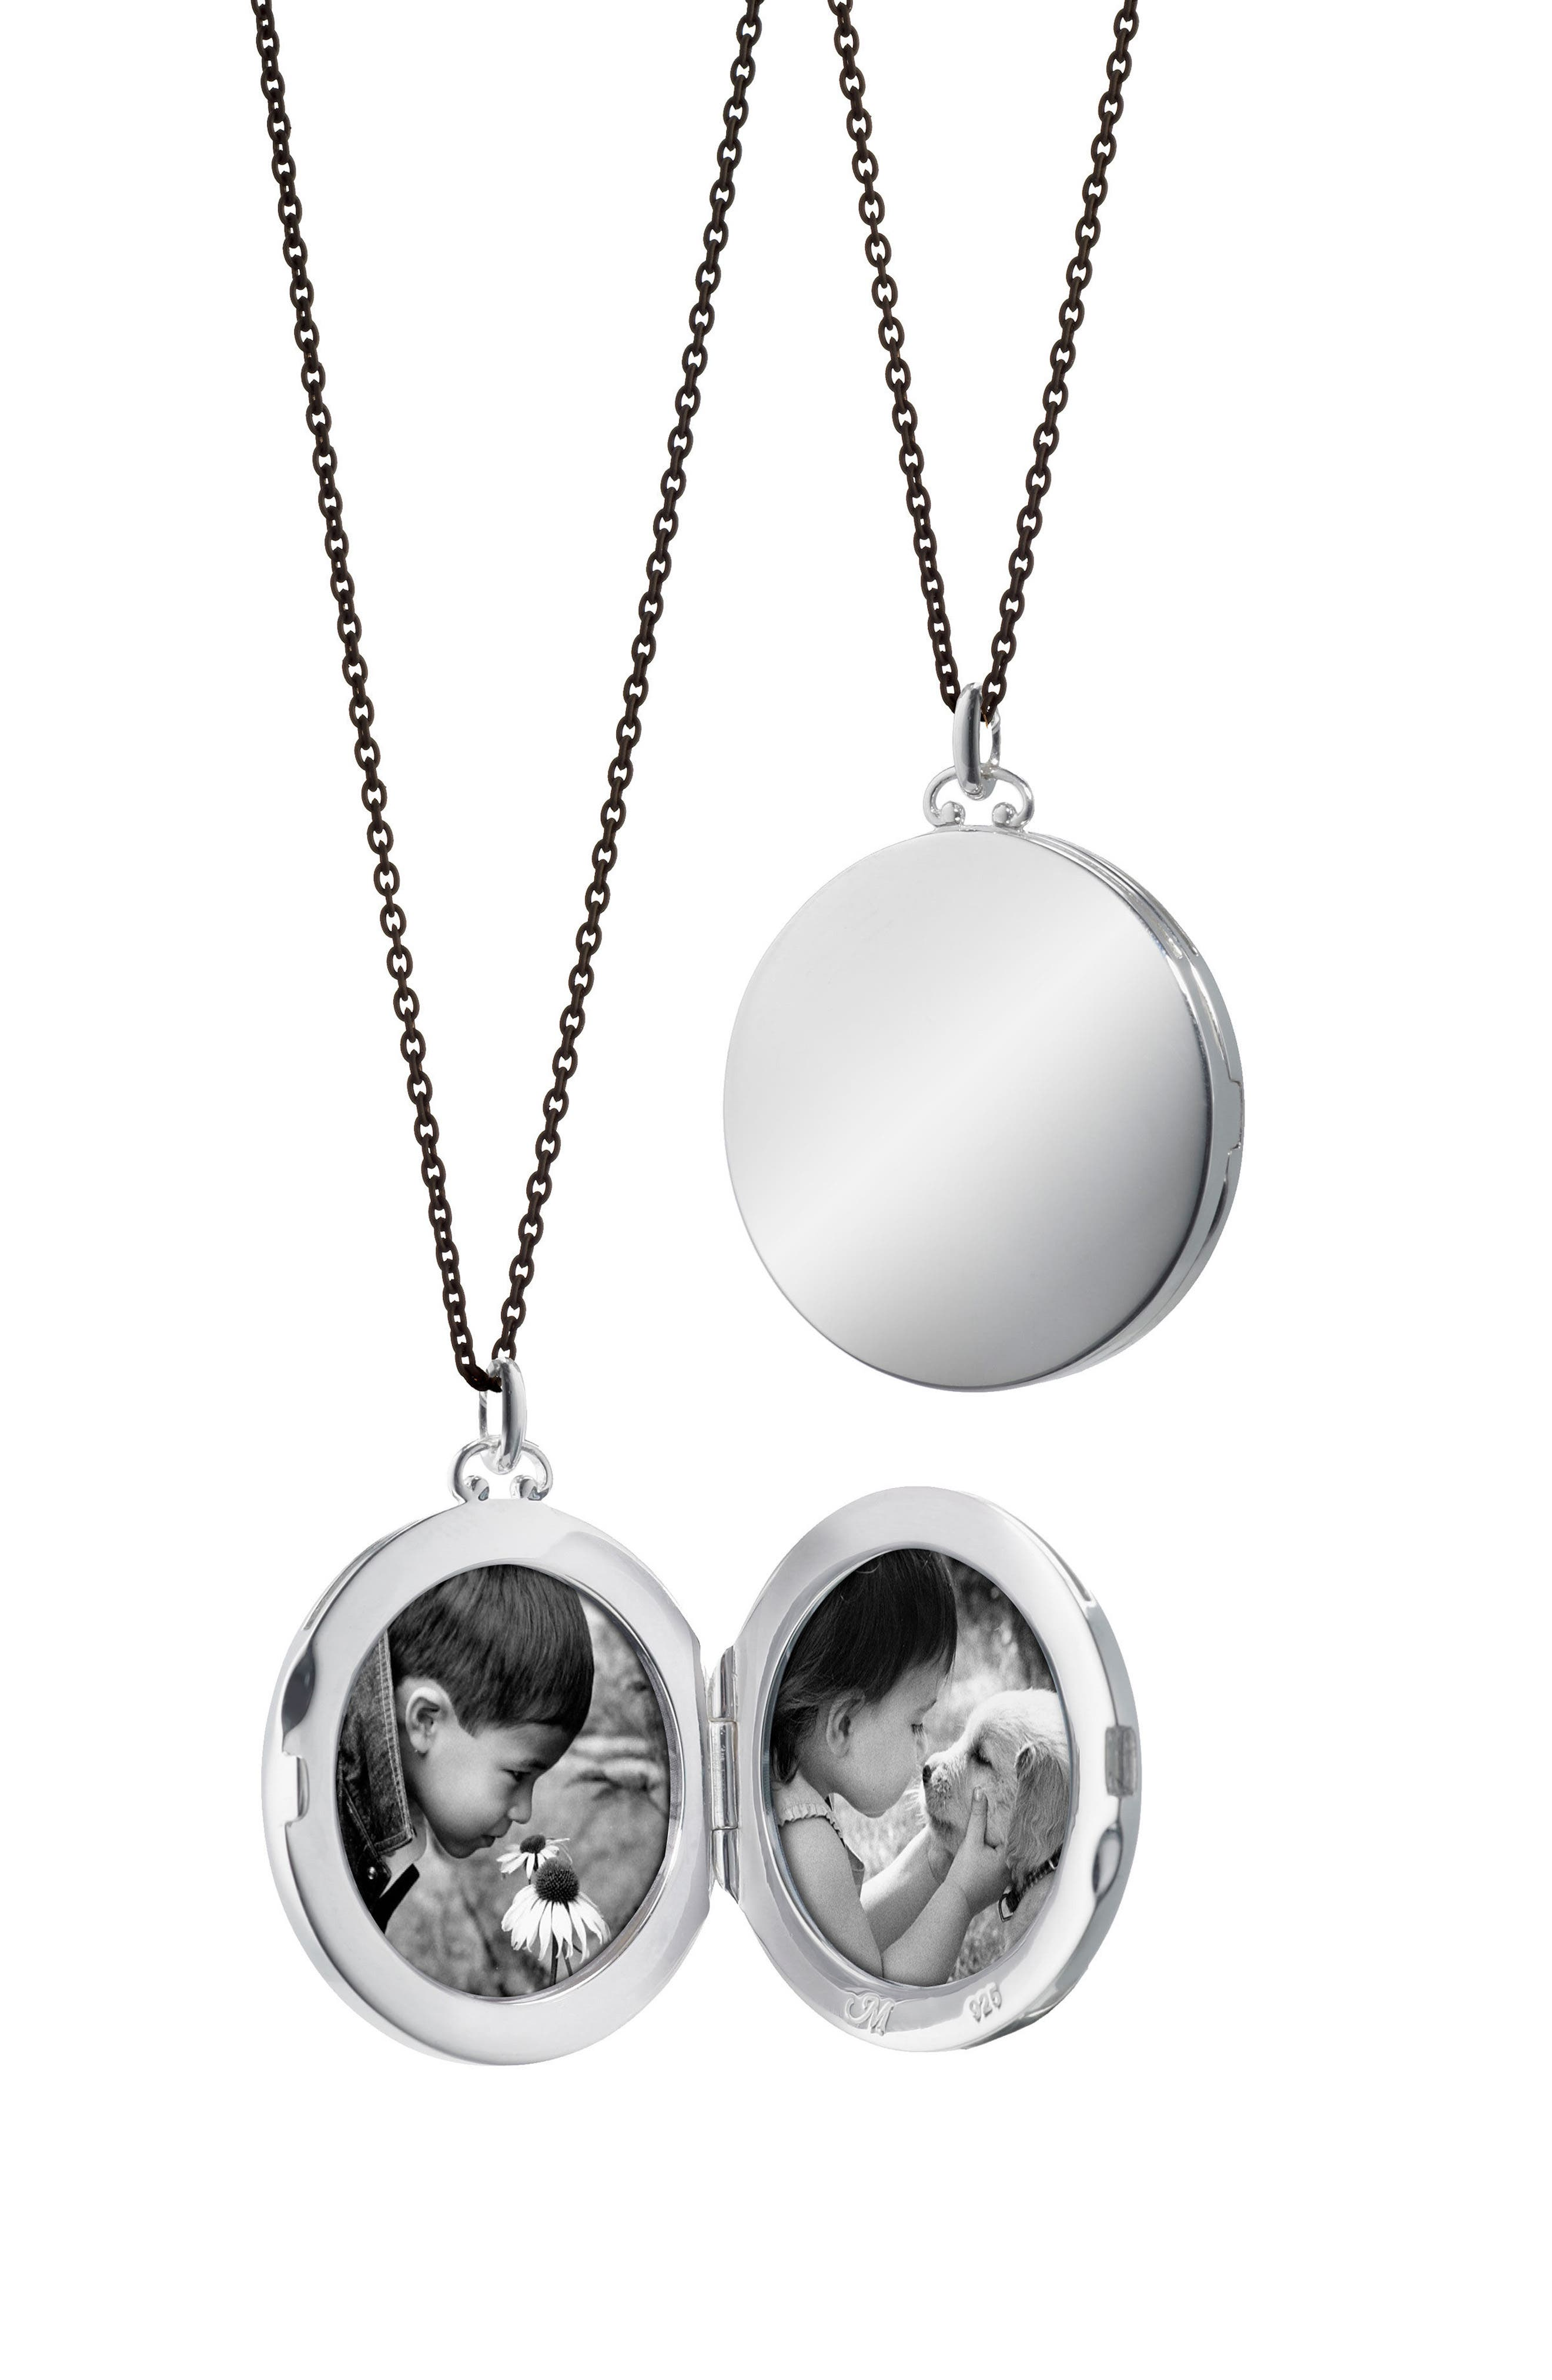 Round Dome Locket Necklace,                             Main thumbnail 1, color,                             Sterling Silver/ Black Steel